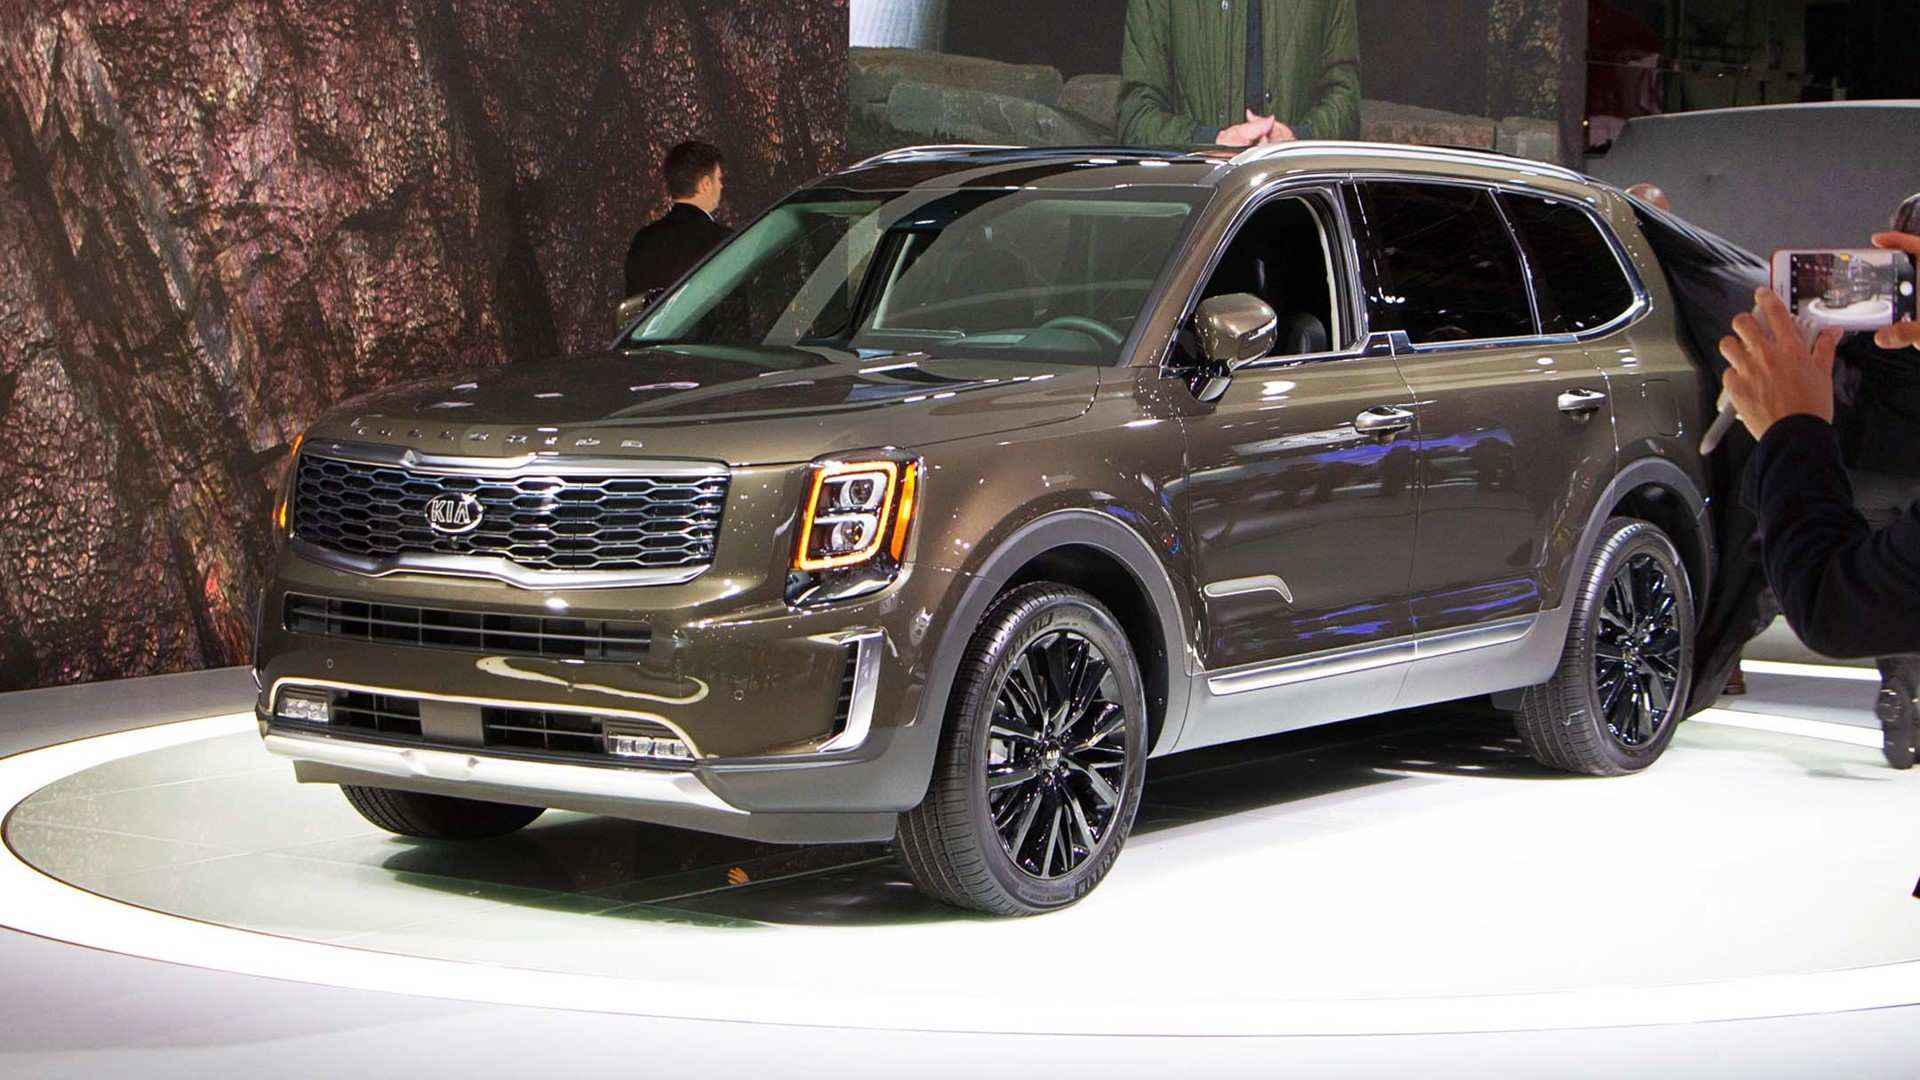 74 Best Review Kia Telluride 2020 Redesign by Kia Telluride 2020